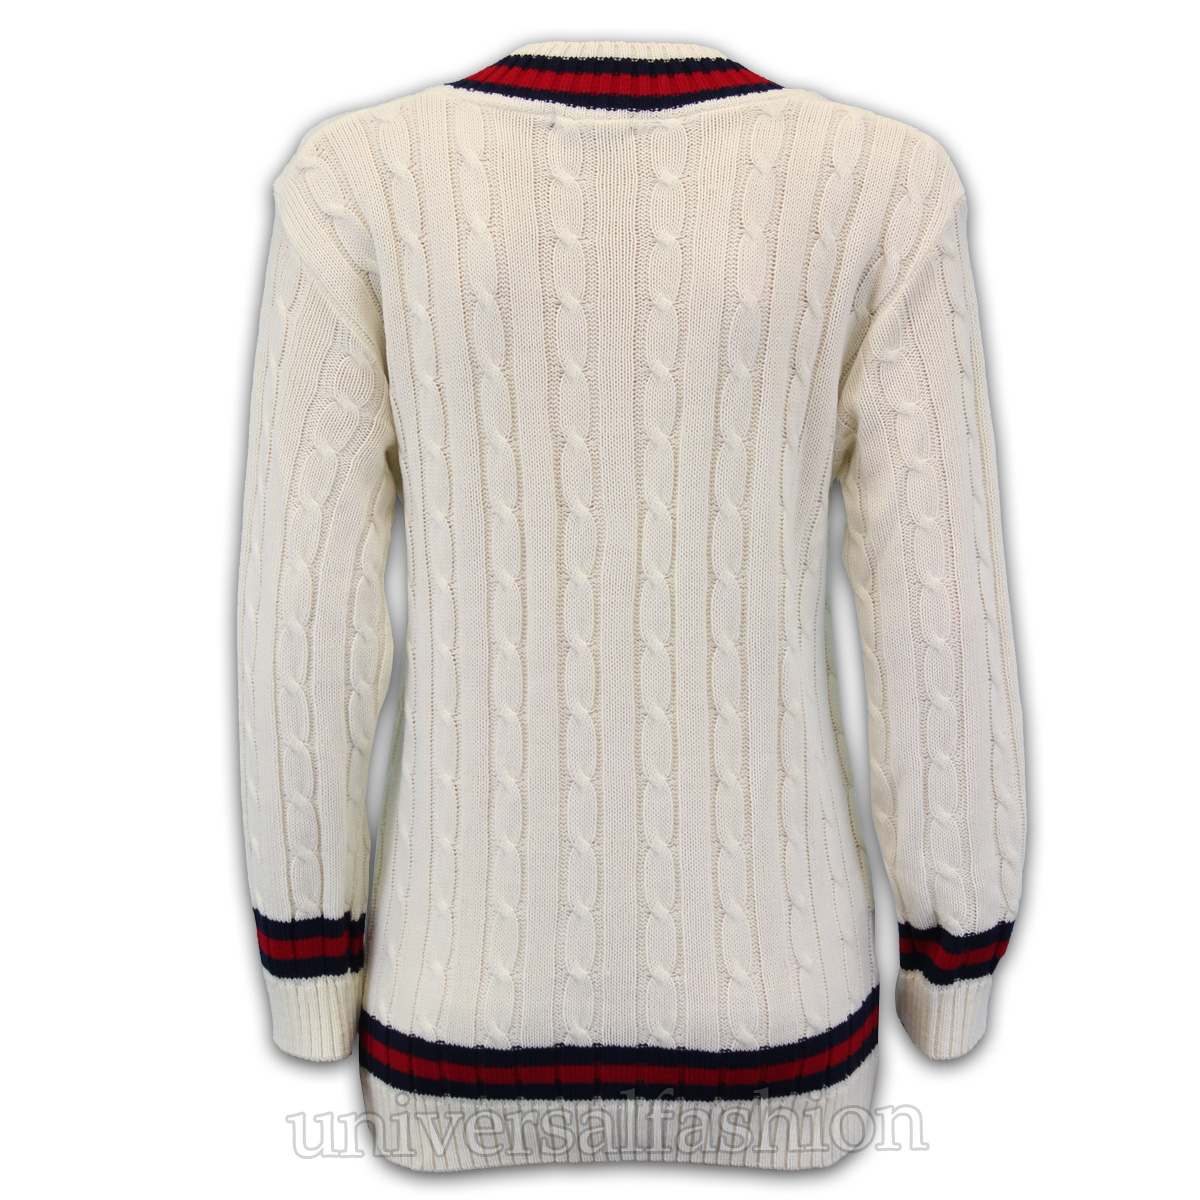 Knitting Pattern For Cricket Sweater : Ladies Womens Knitted Cricket Jumper Sweater